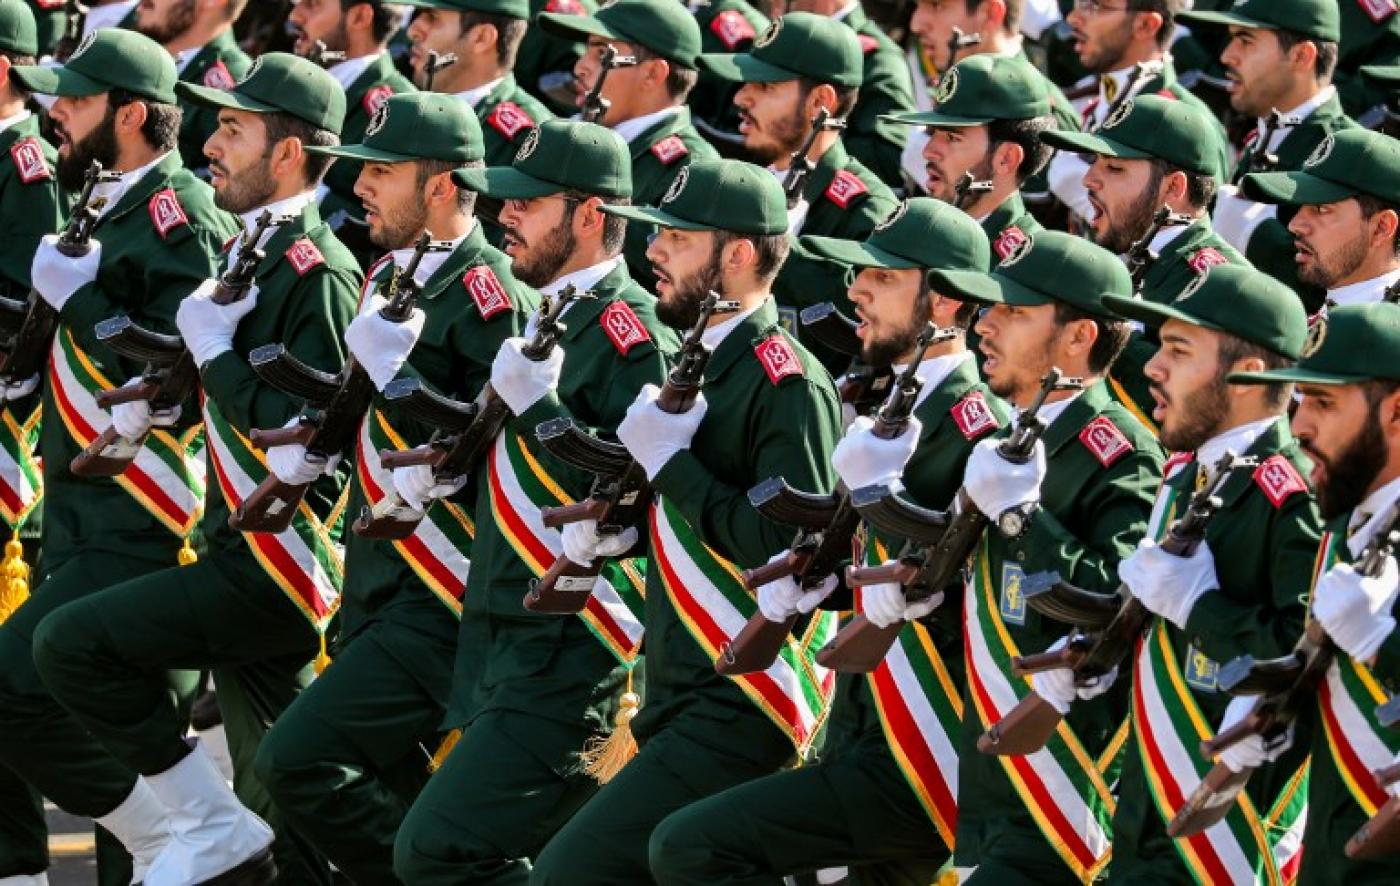 One guard dead, five hurt in attack as Iran holds anniversary